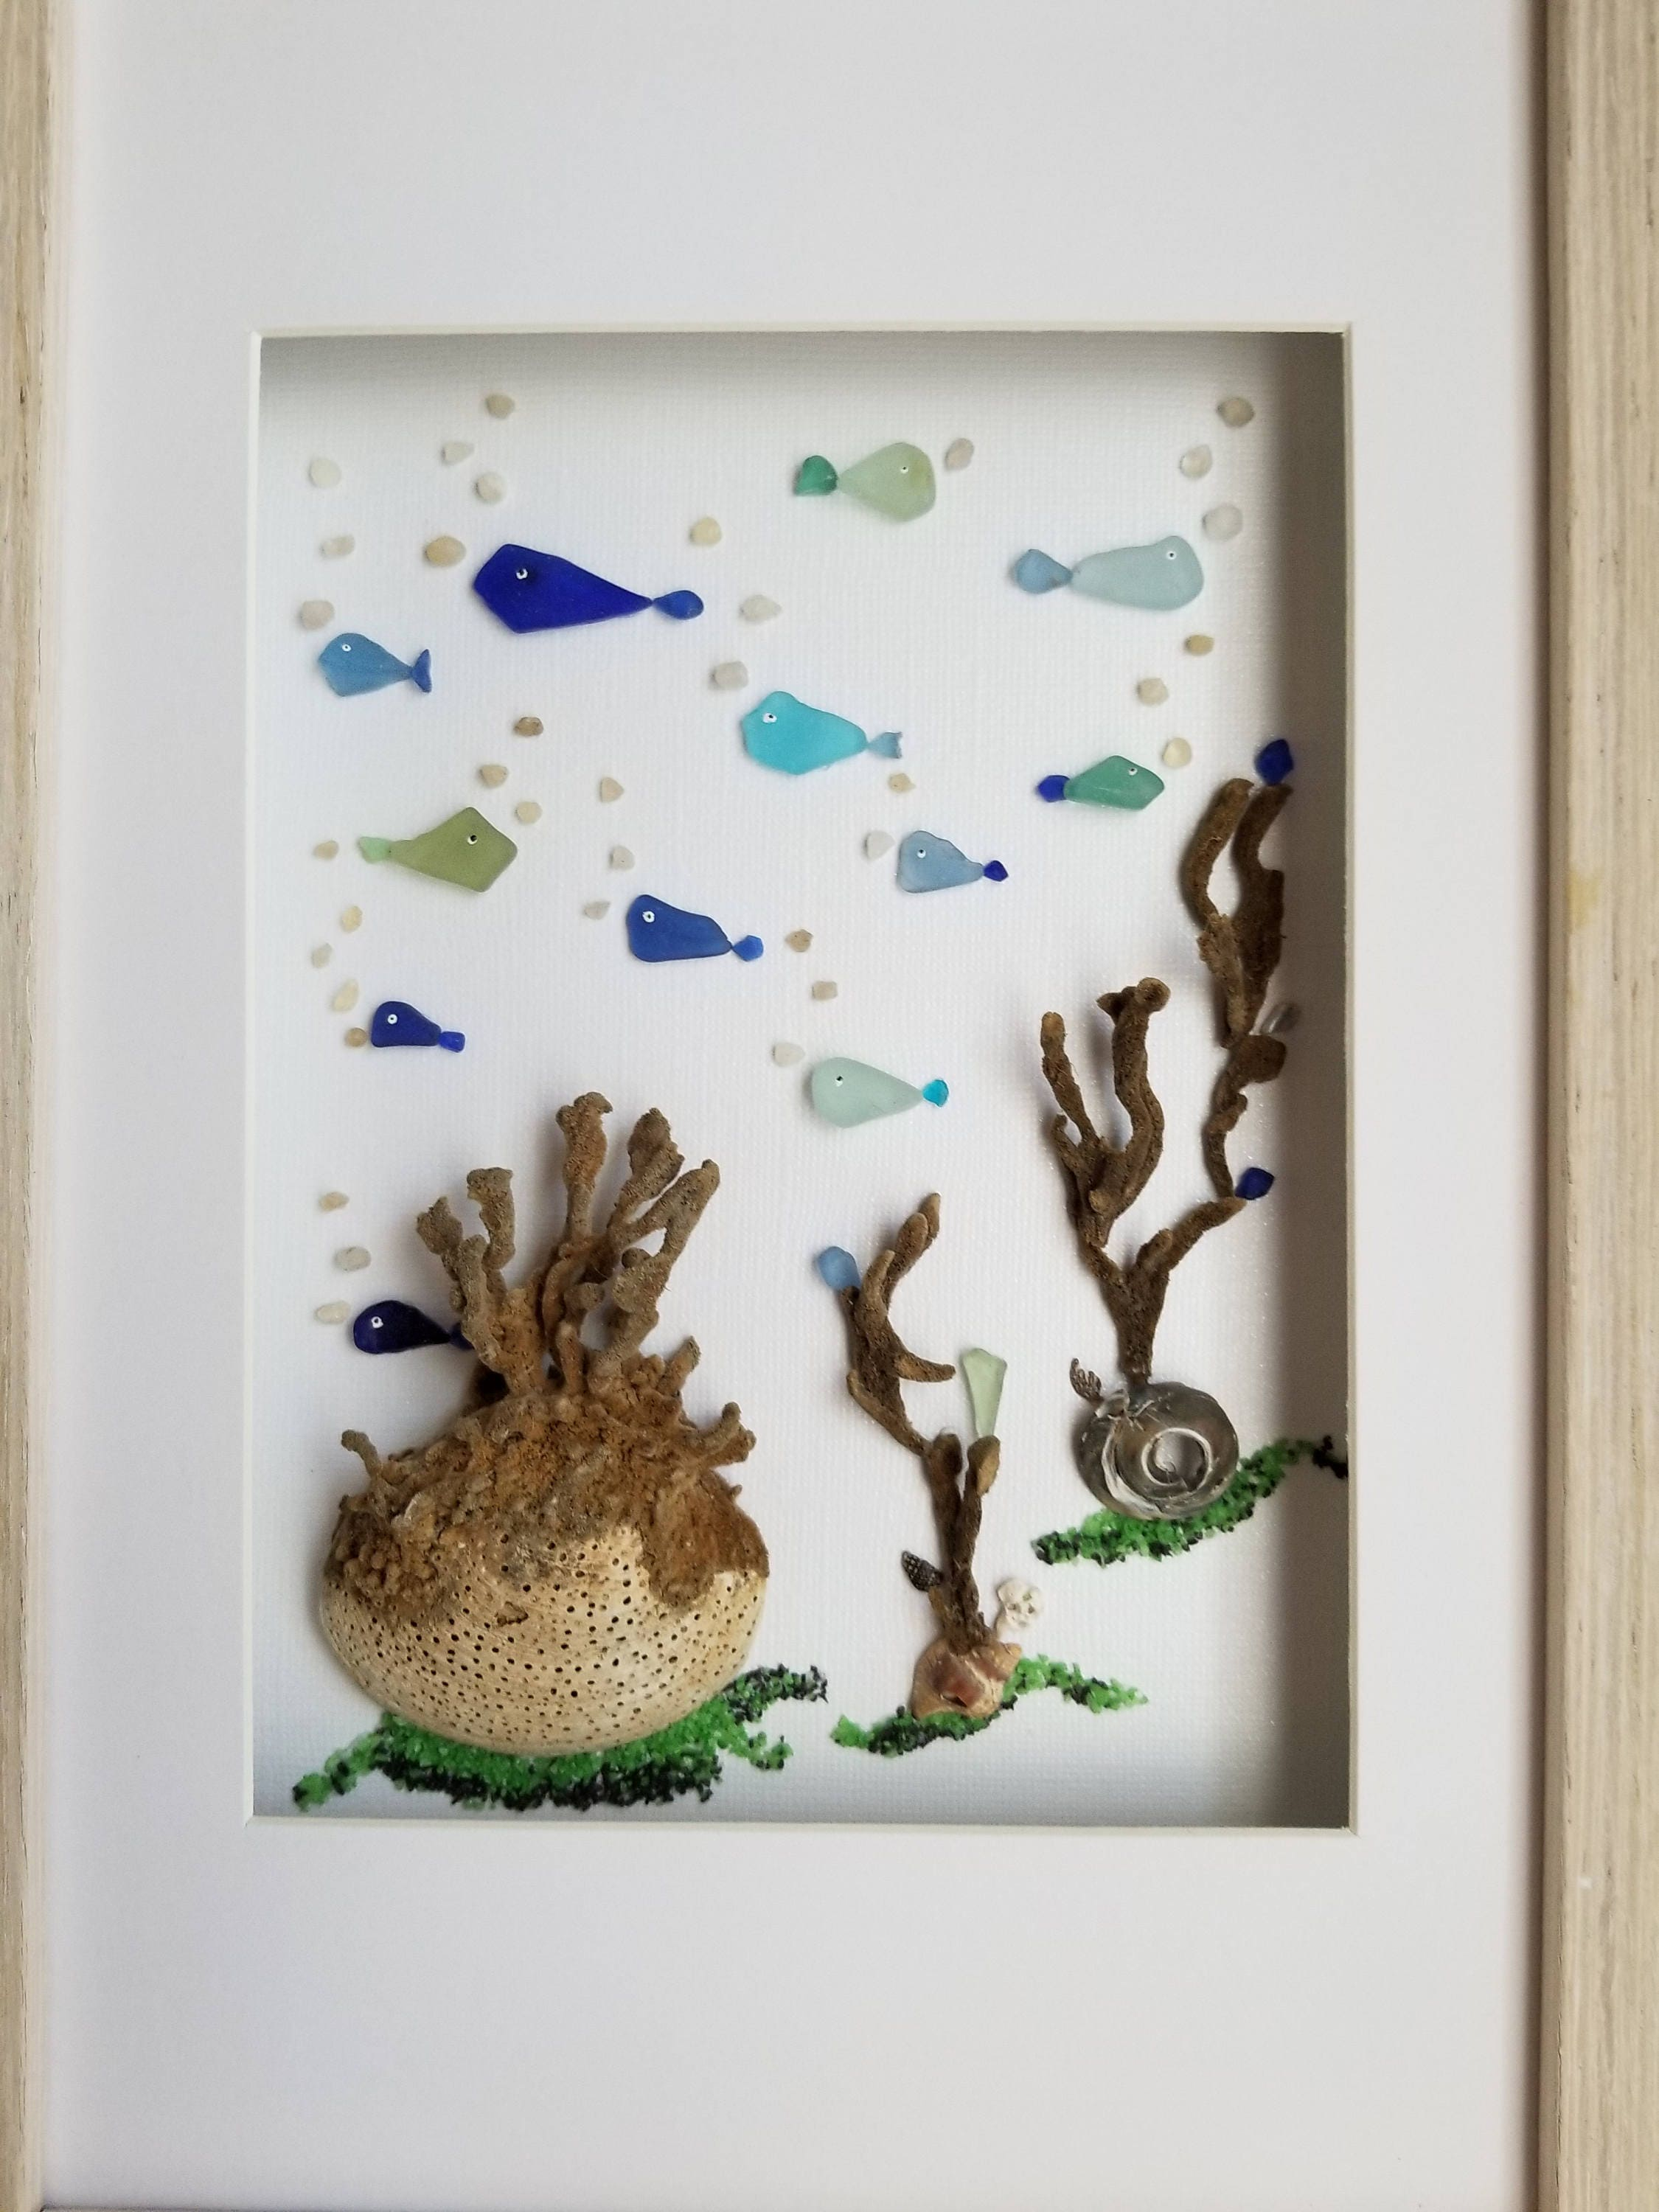 Sea Glass Art Framed Sea Glass Bathroom Wall Decor Costal